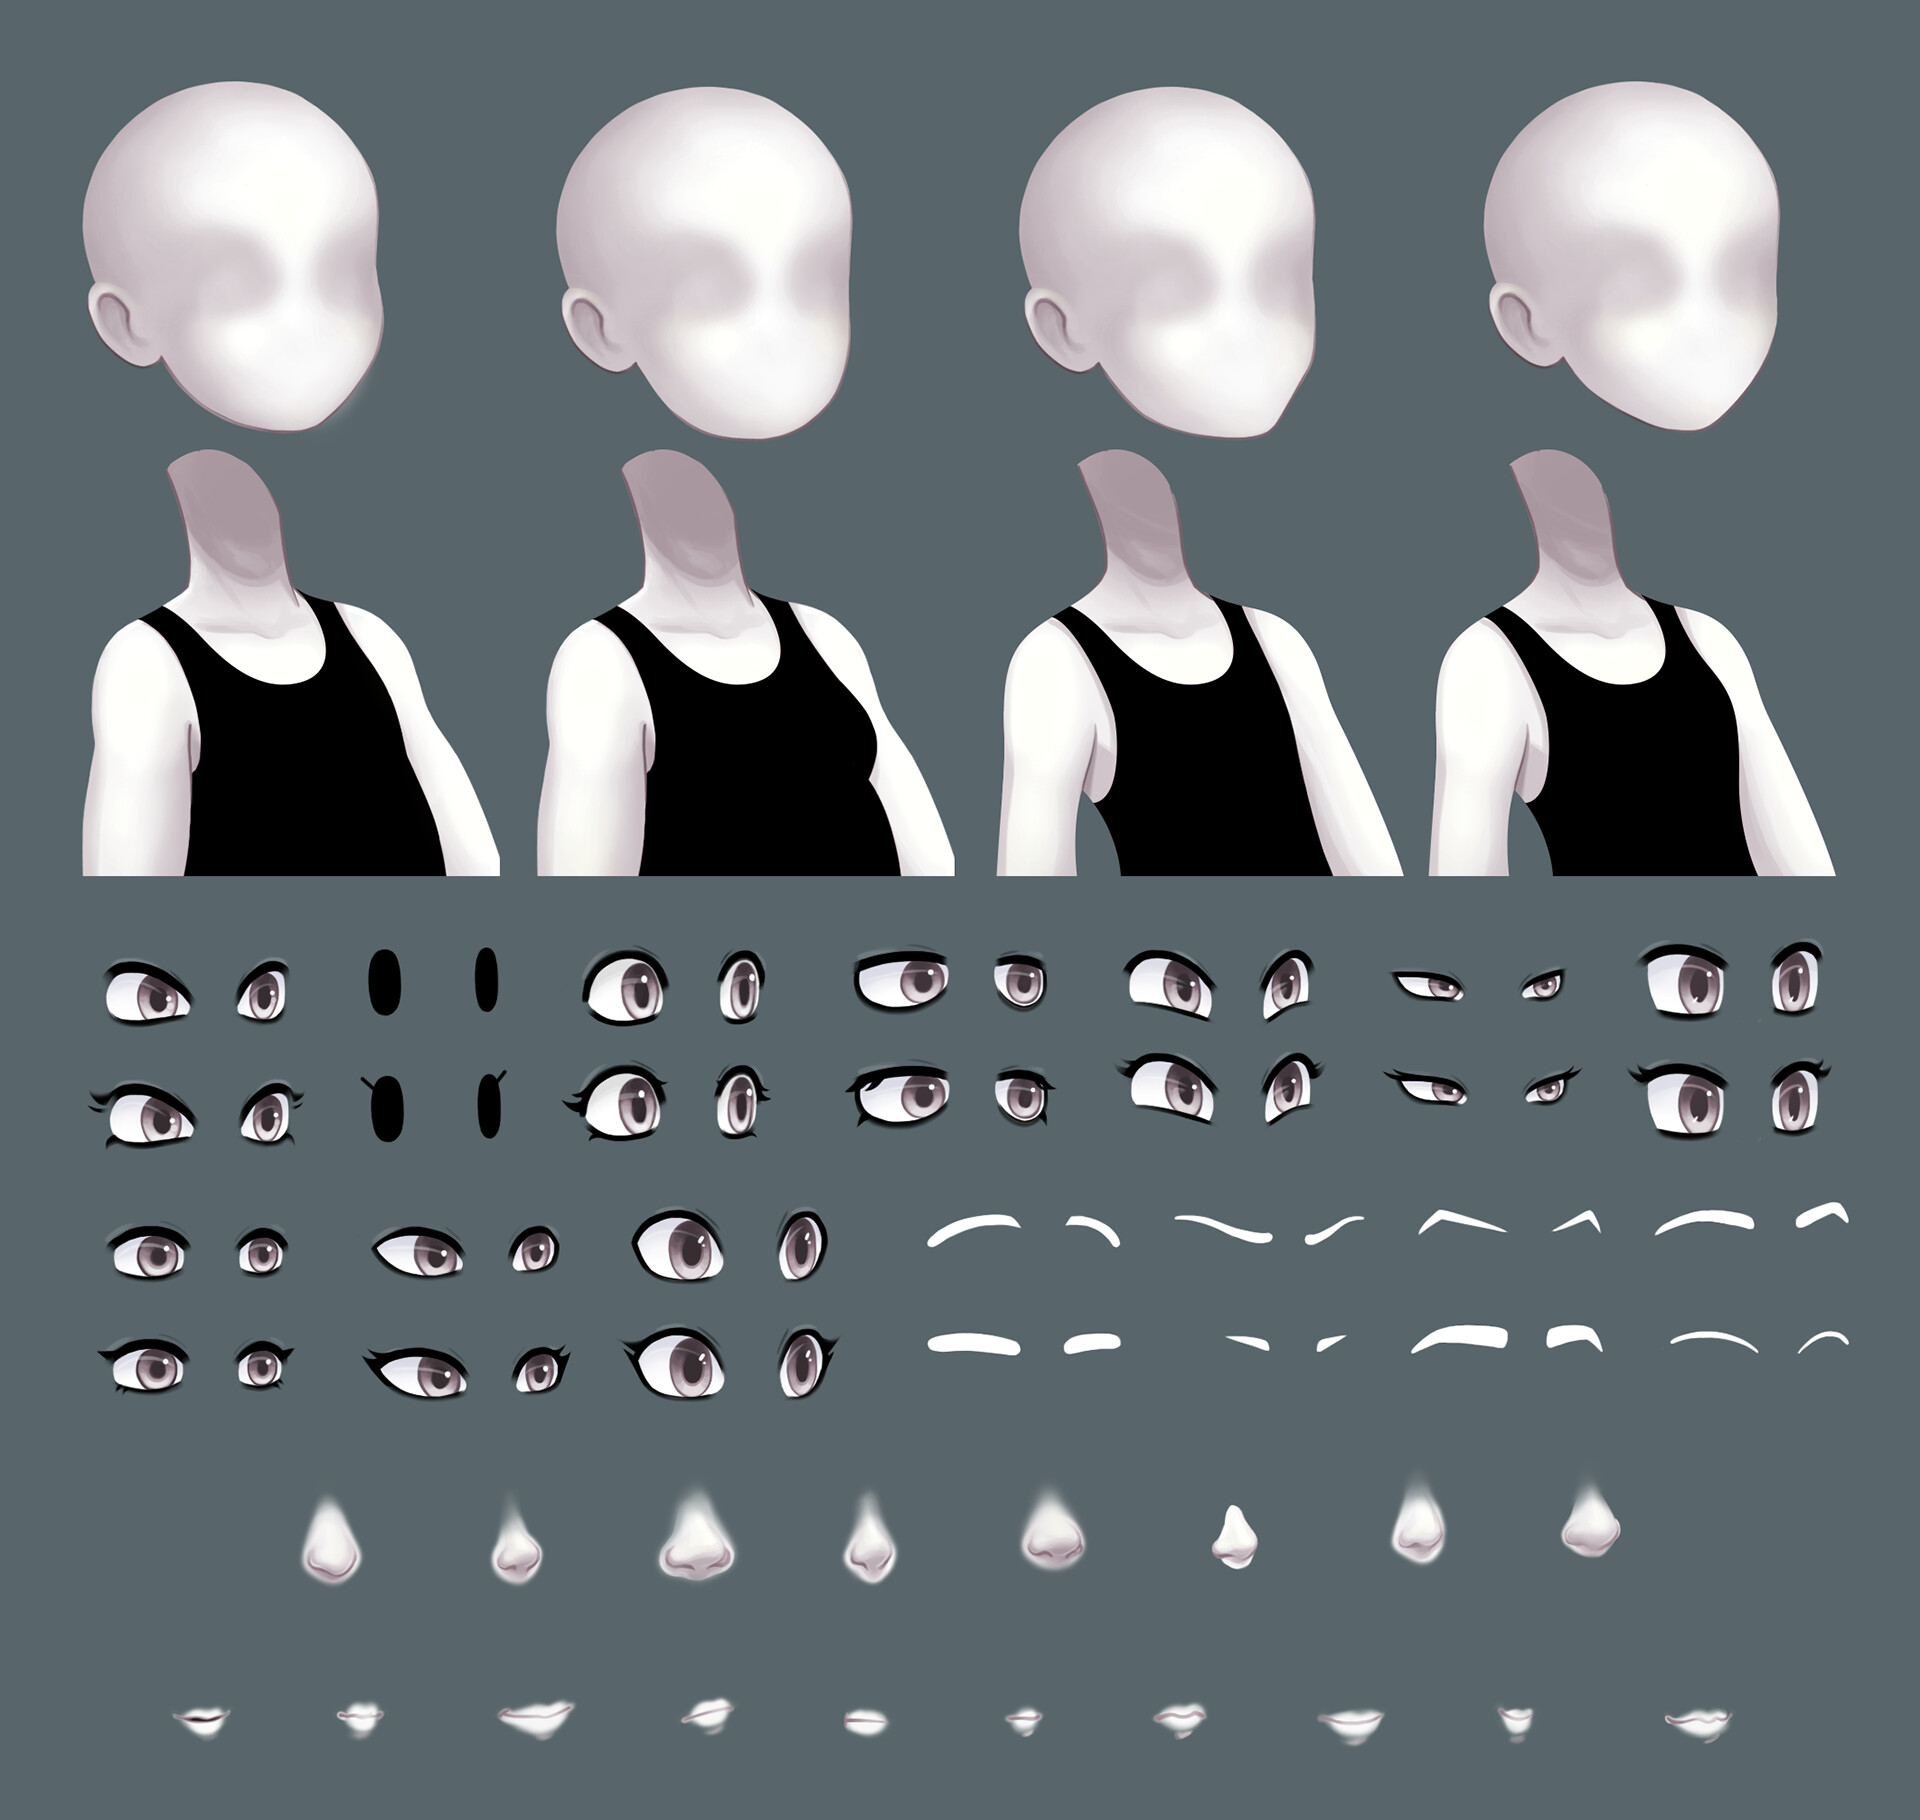 Selection of head and body types, as well as facial features